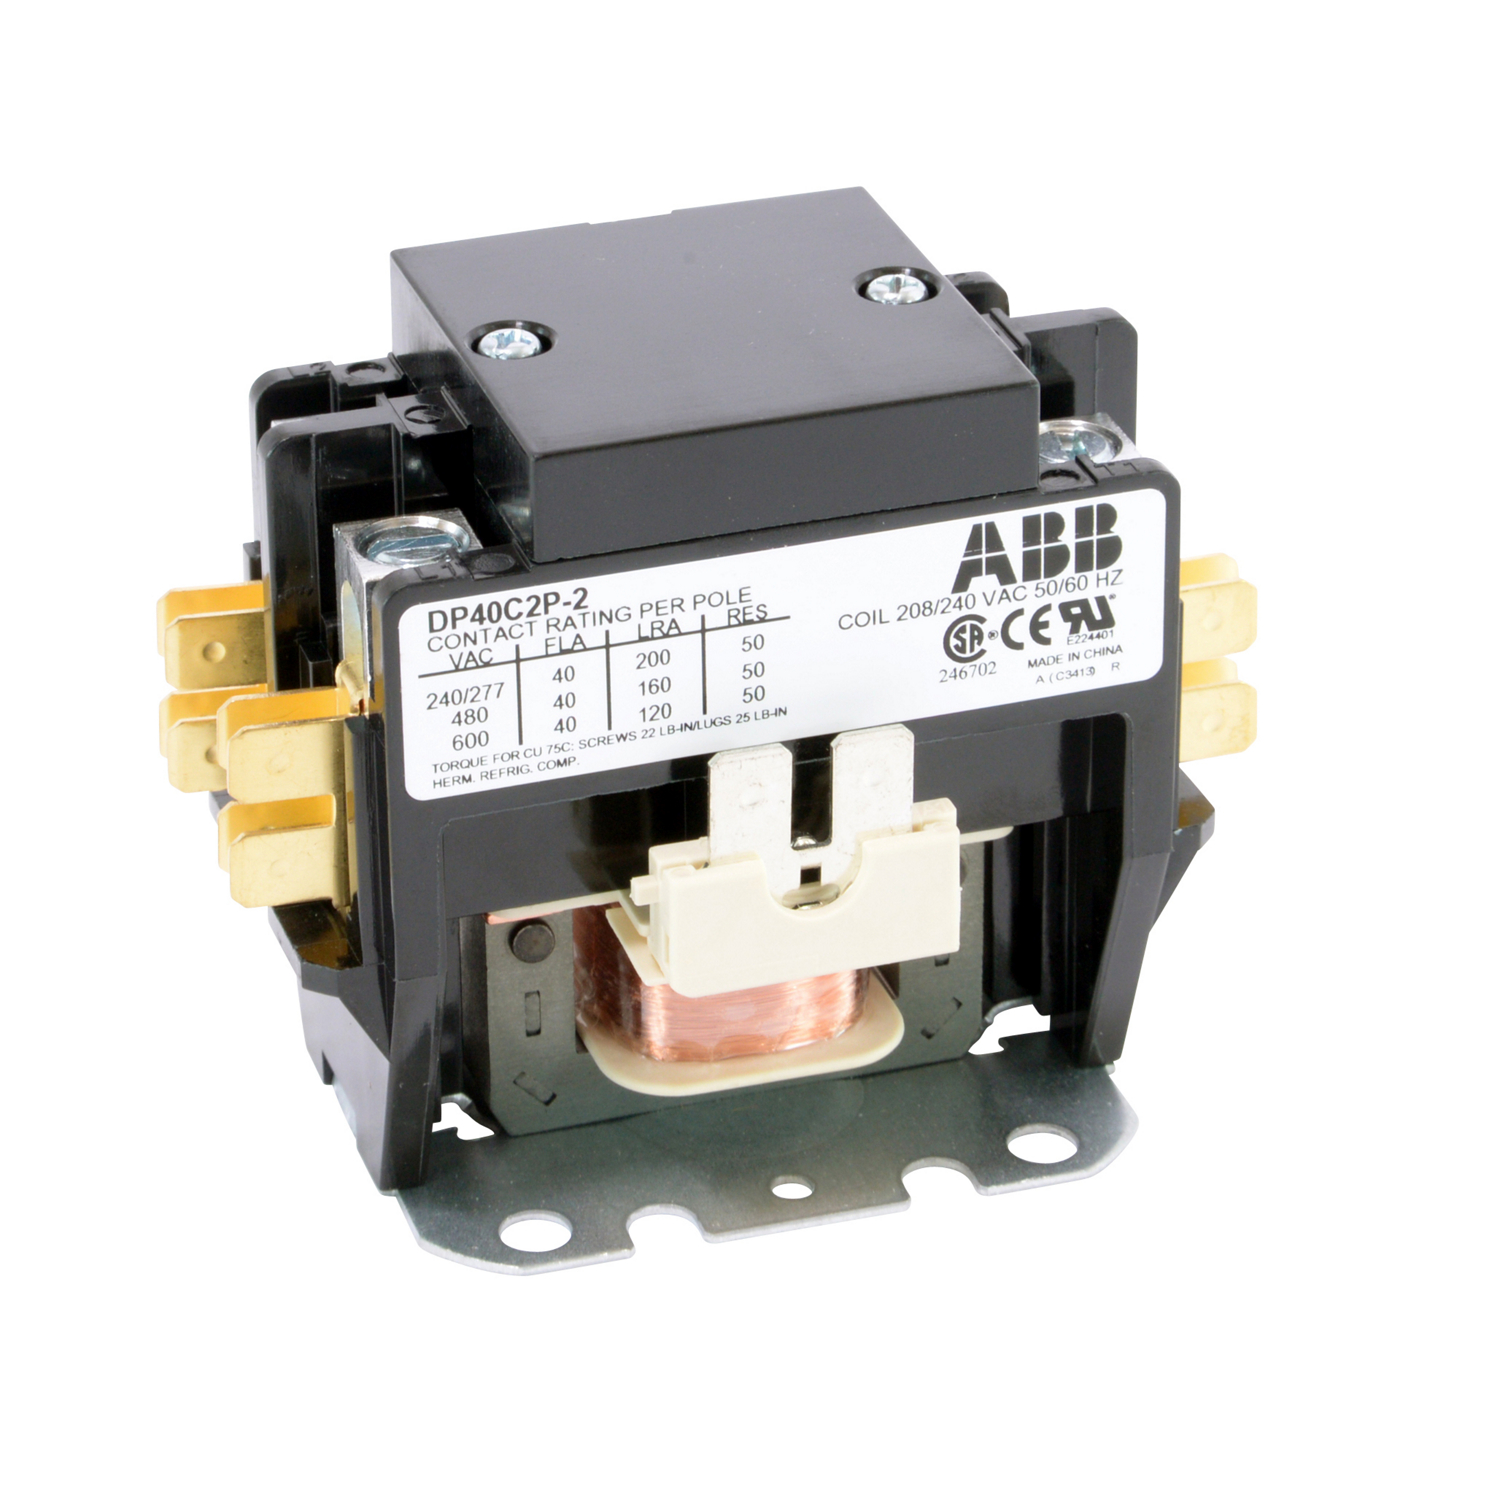 ABB DP40C2P-2 DPCONTR, 40A, 2P, 240 /208V 40 Amp, 2-Pole, Definite Purpose Contactor, 600V Rated, Screw Terminals, 208/240V AC Coil. **THESE CONTACTORS ARE NOT RECOMMENDED FOR USE ON LIGHTING CIRCUITS, IF THEY ARE USED ON LIGHTING CIRCUITS, THEY WILL NOT BE COVERED UNDER WARRANTY**